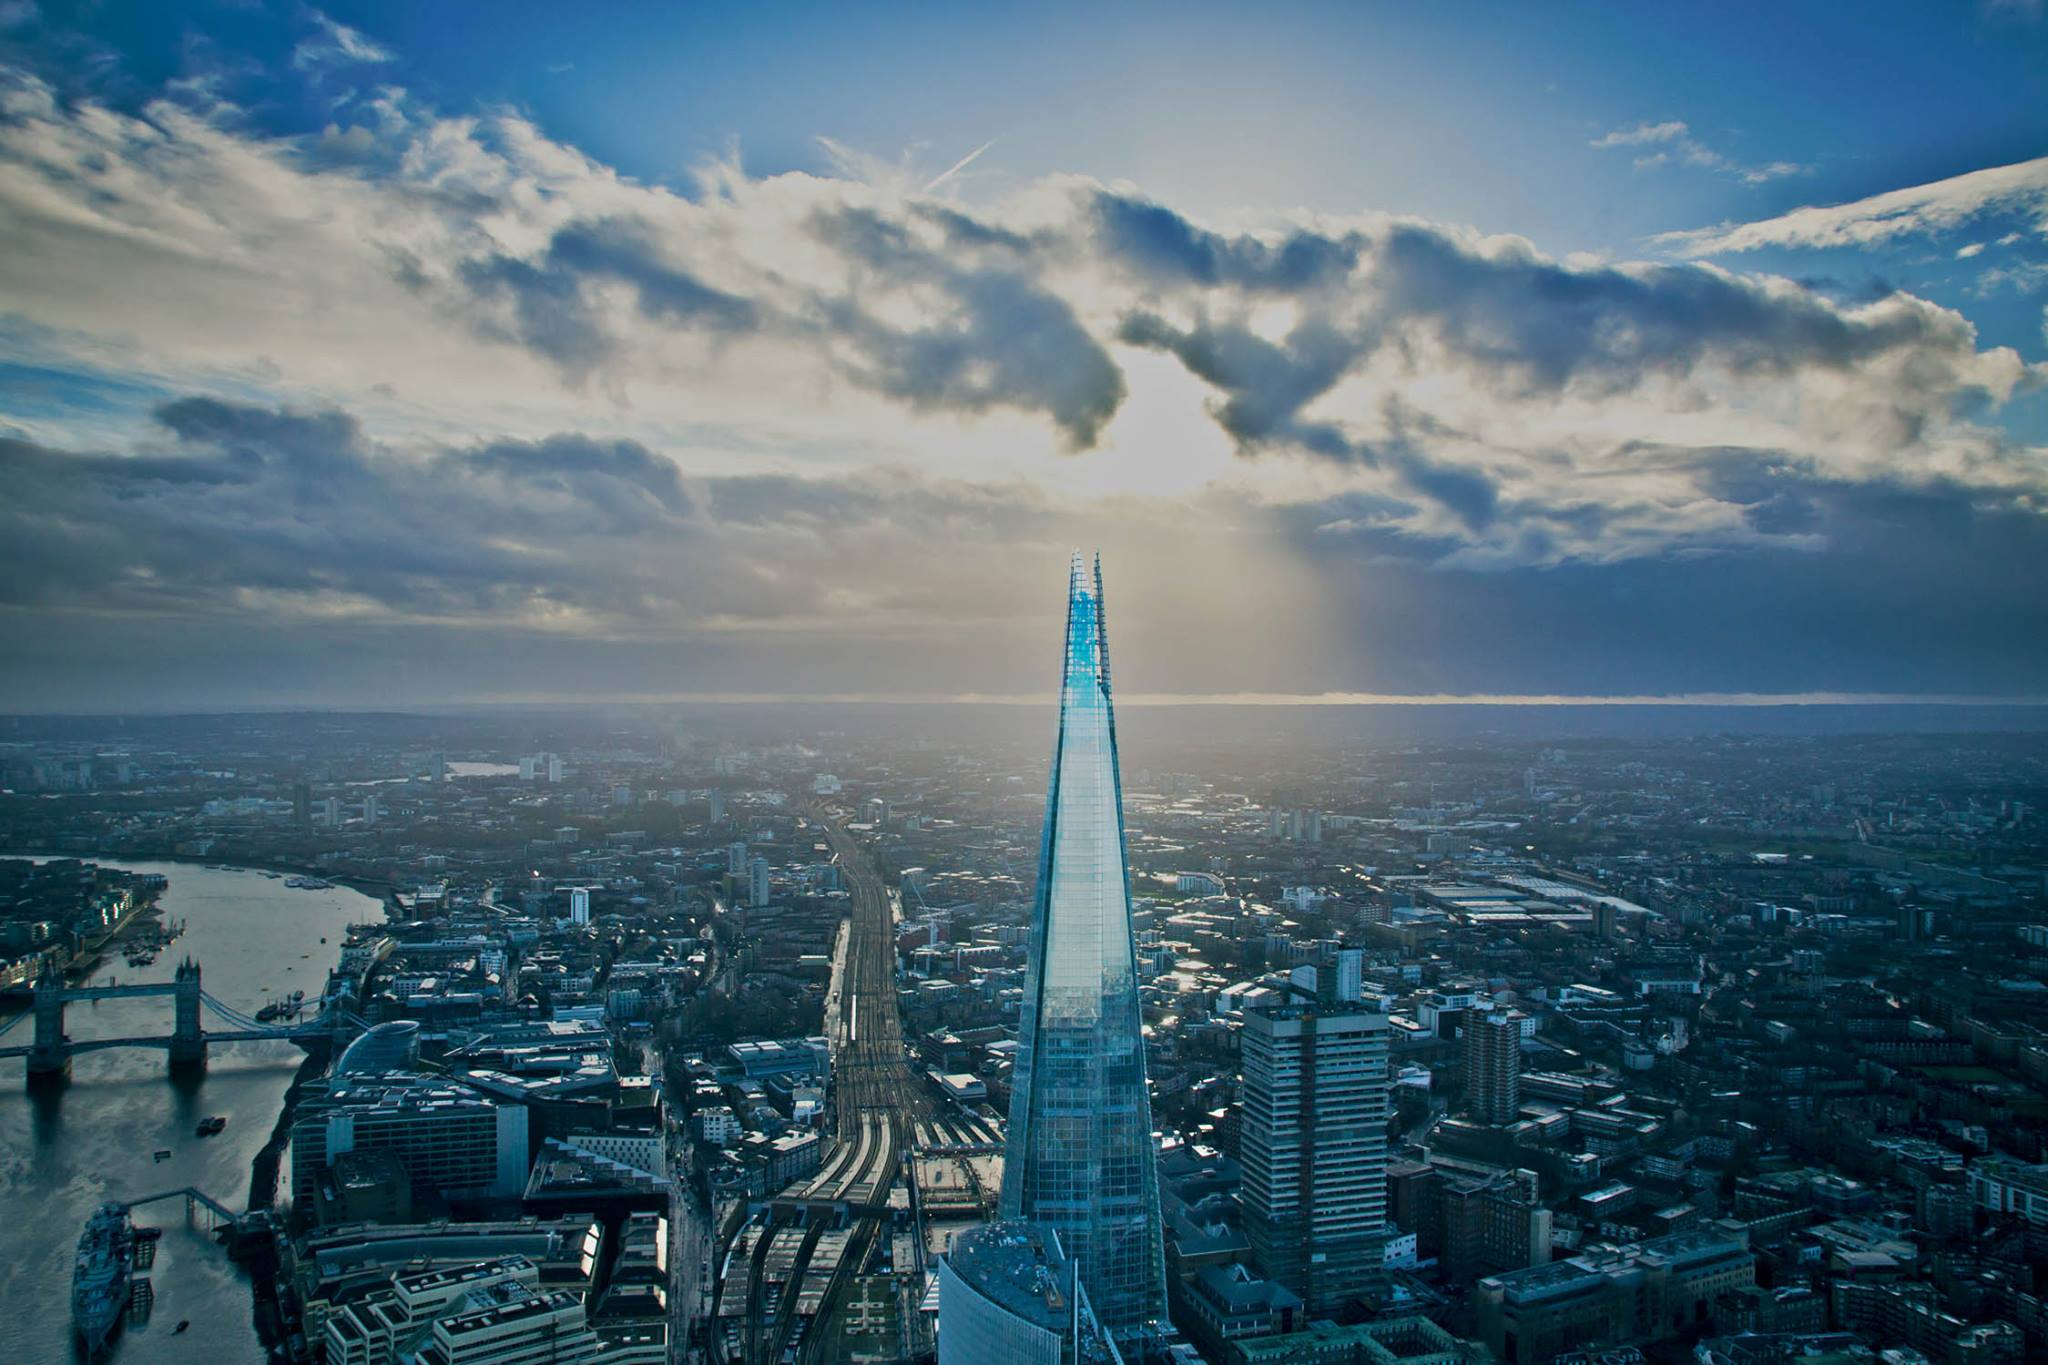 L'iconico grattacielo The Shard a Londra